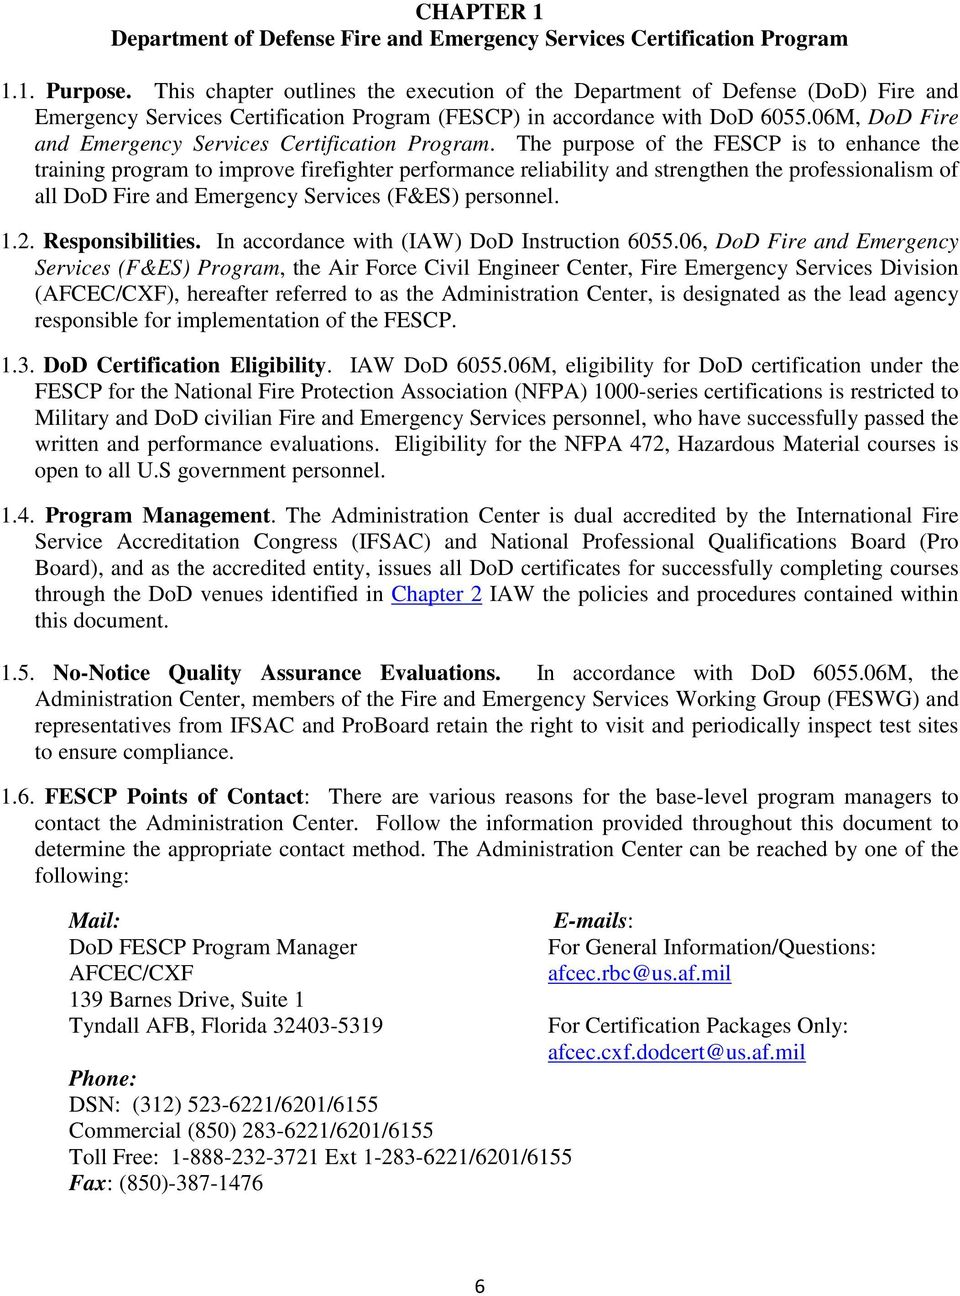 Department Of Defense Fire And Emergency Services Certification